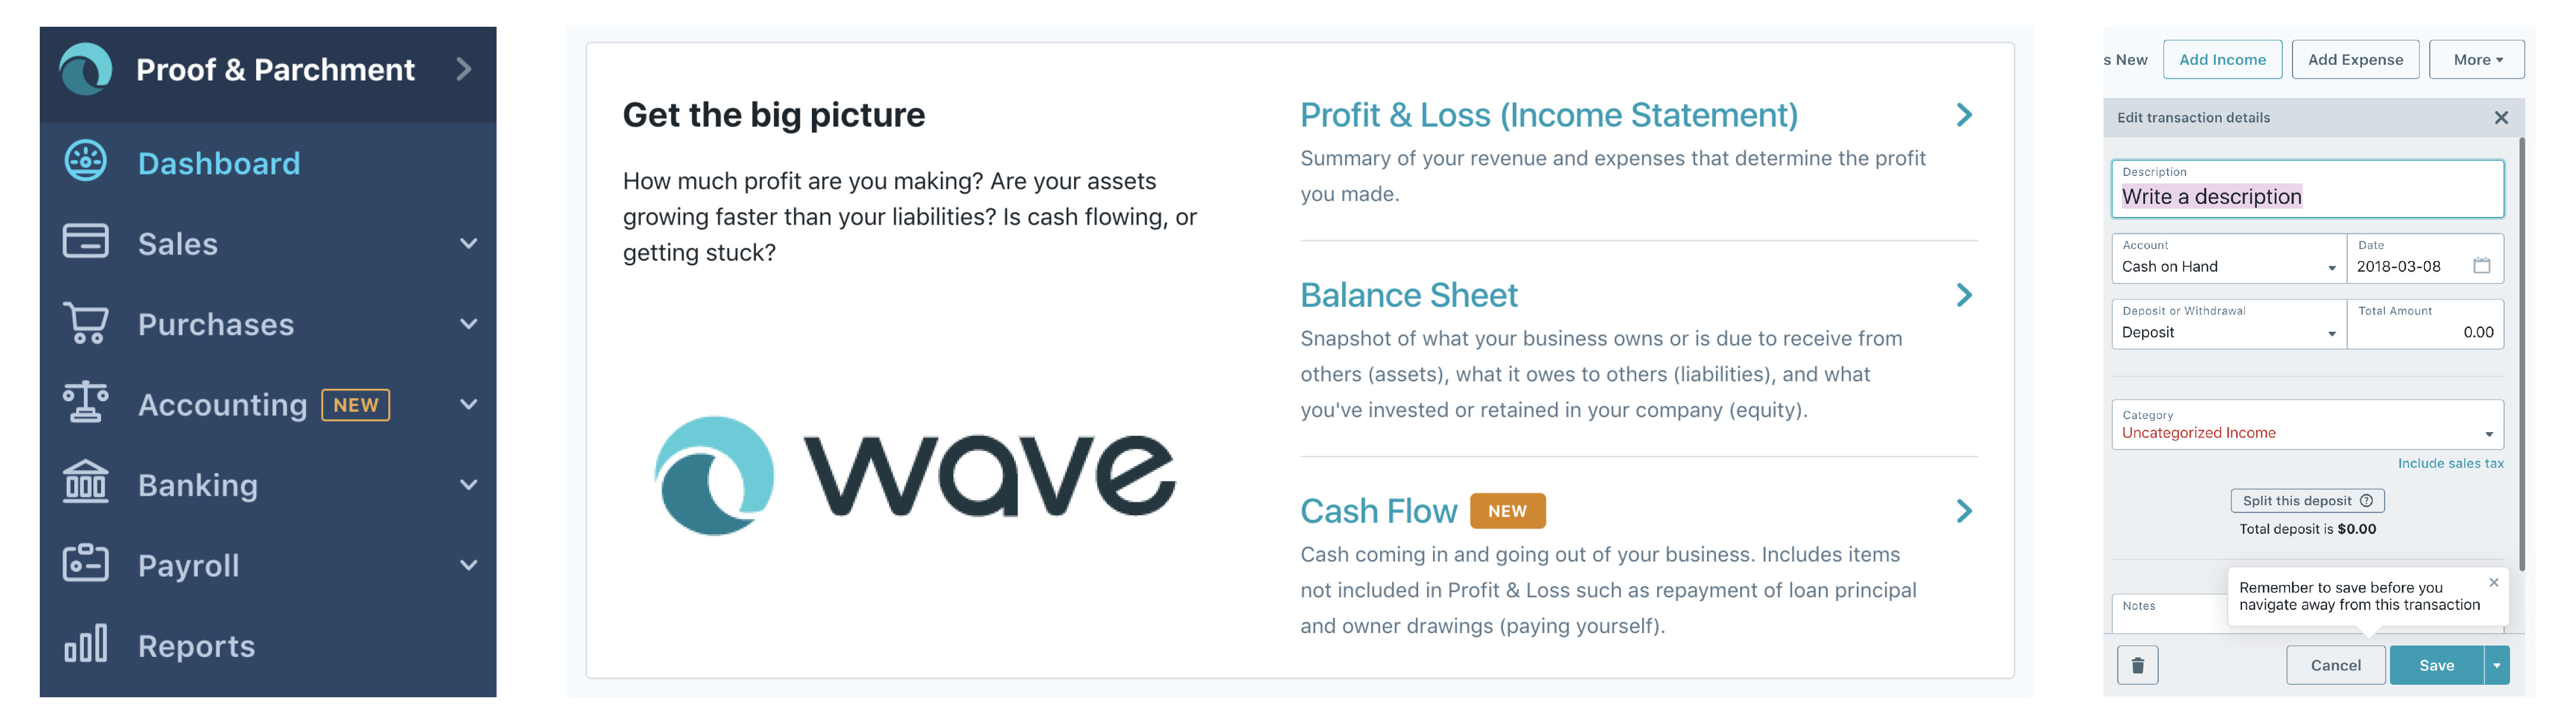 Business tool screenshots from Wave